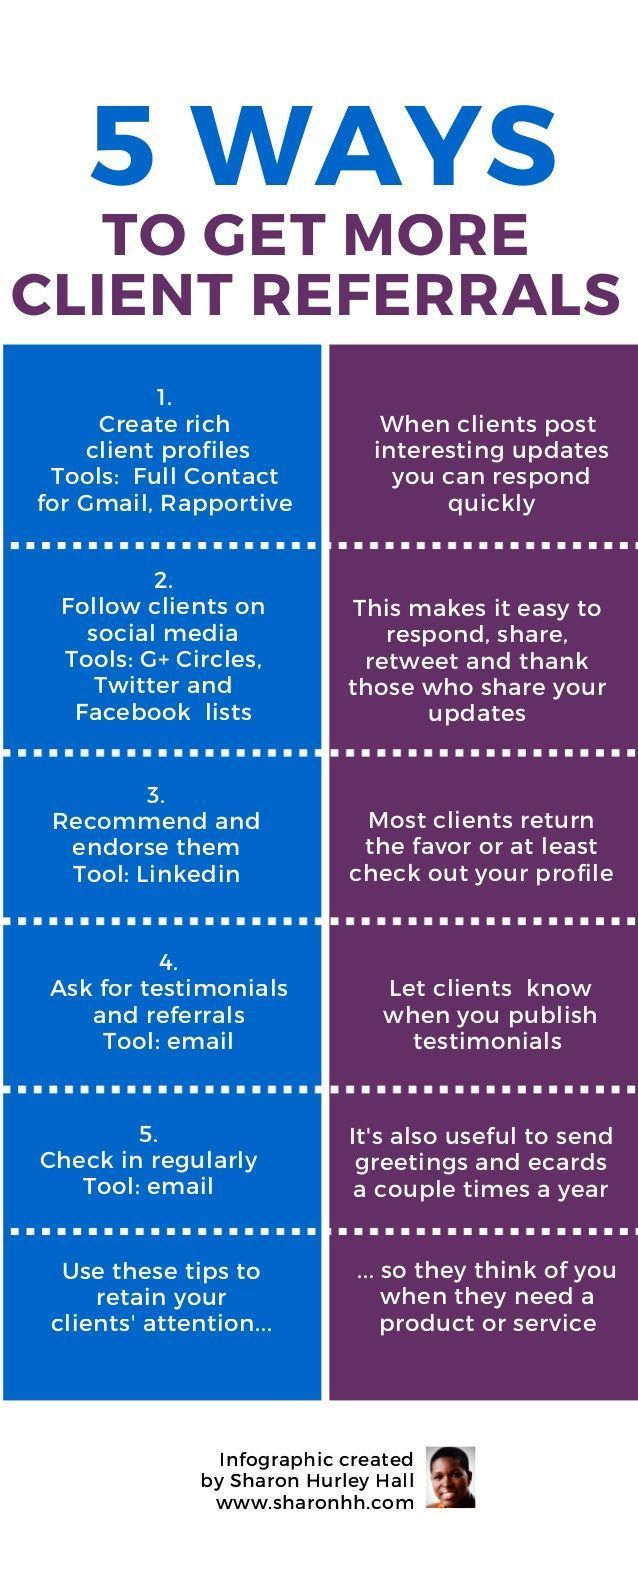 #marketing… #referencias #referencias #infographic #infographic